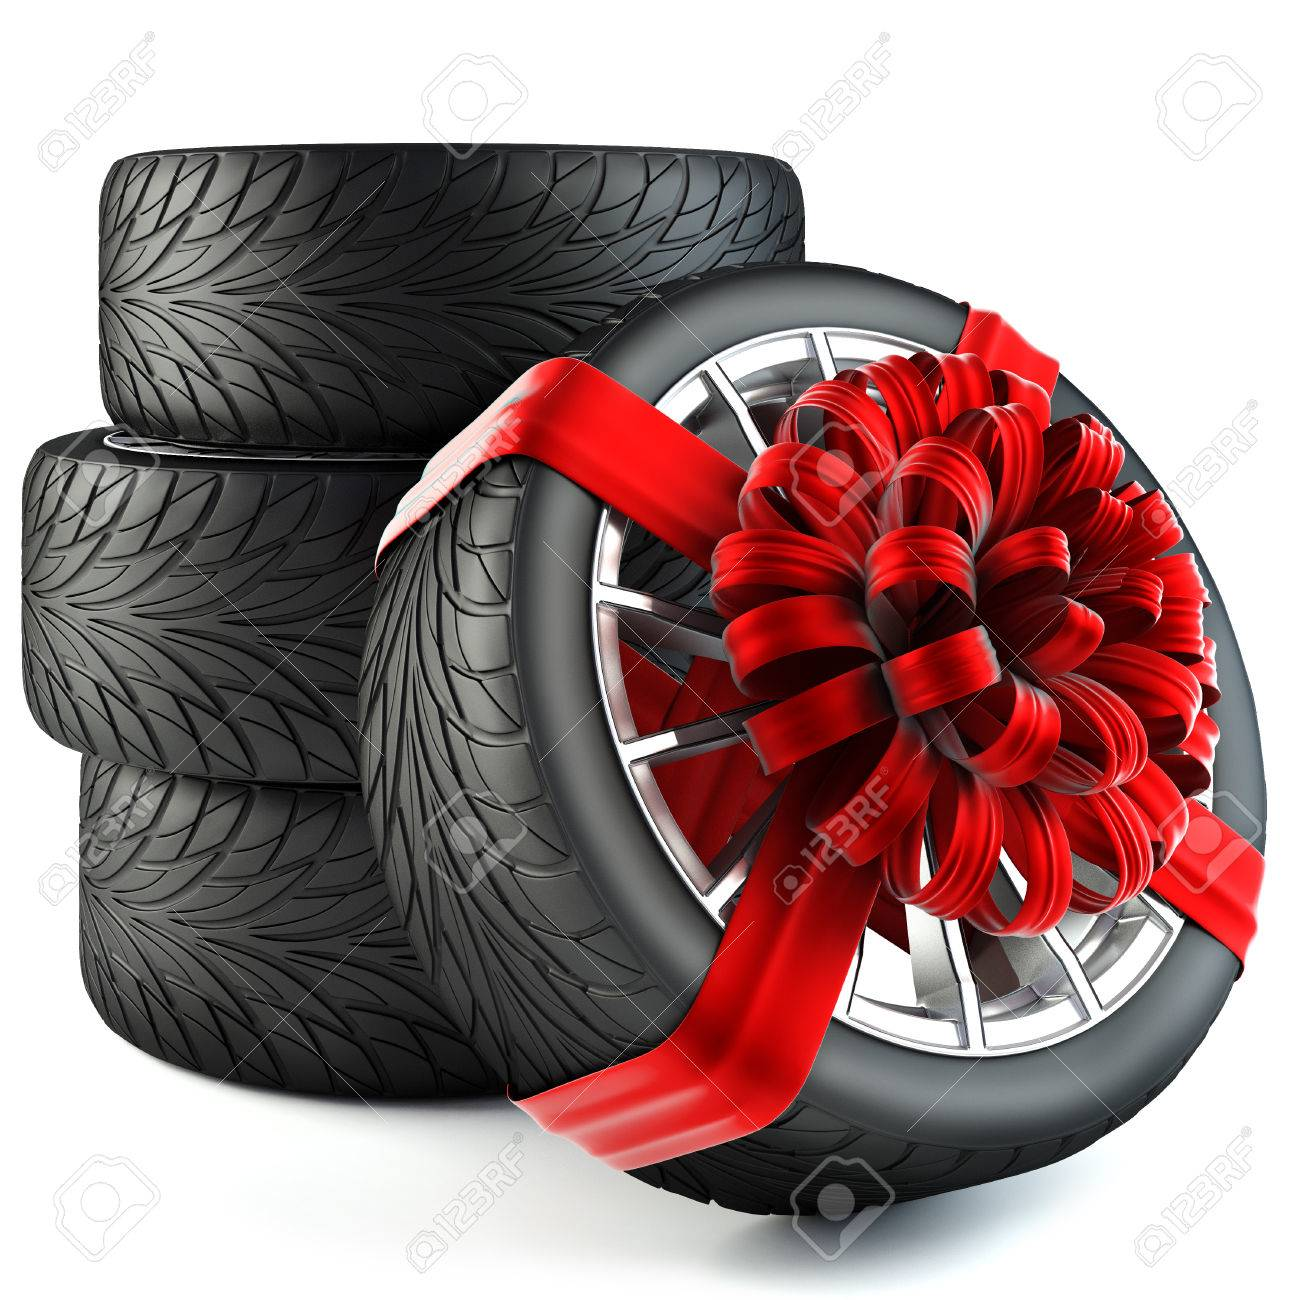 Discount tire stock photos pictures royalty free discount tire tires wrapped in red gift ribbon with a bow isolated on white background buycottarizona